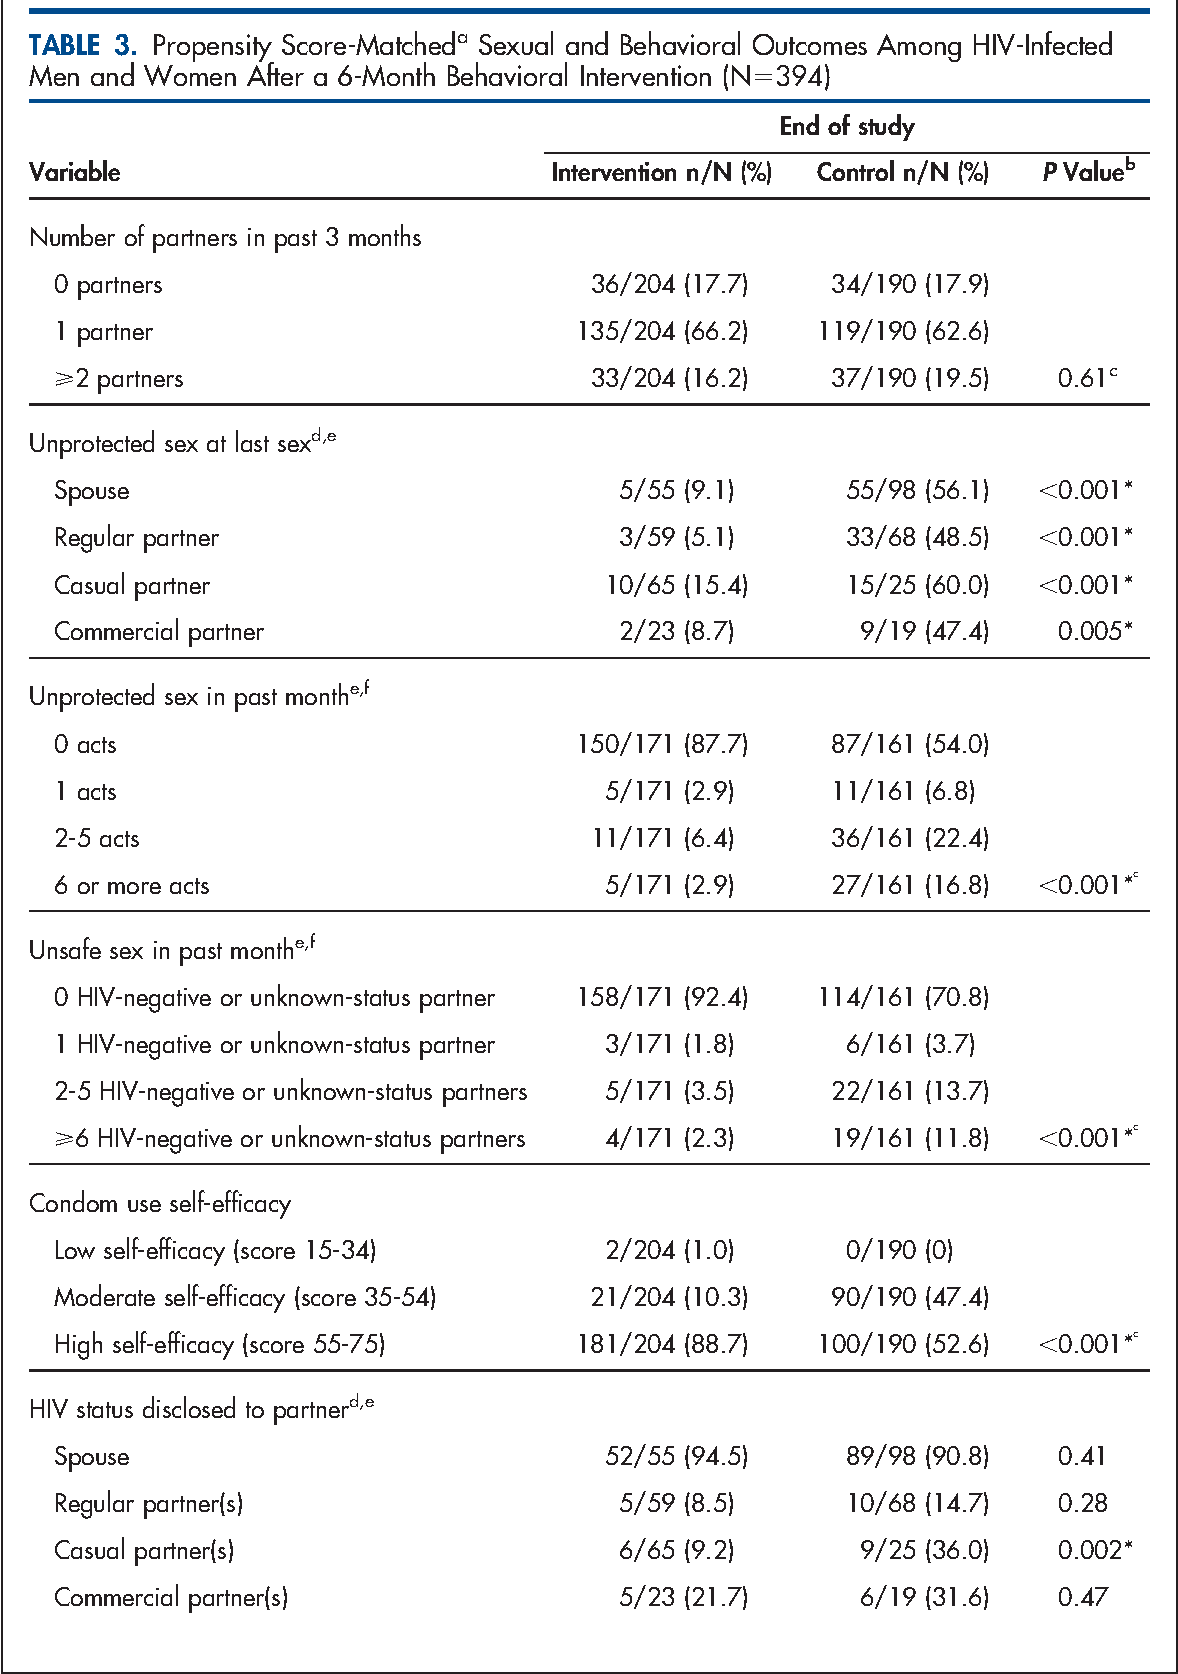 TABLE 3. Propensity Score-Matcheda Sexual and Behavioral Outcomes Among HIV-Infected Men and Women After a 6-Month Behavioral Intervention (N5394)